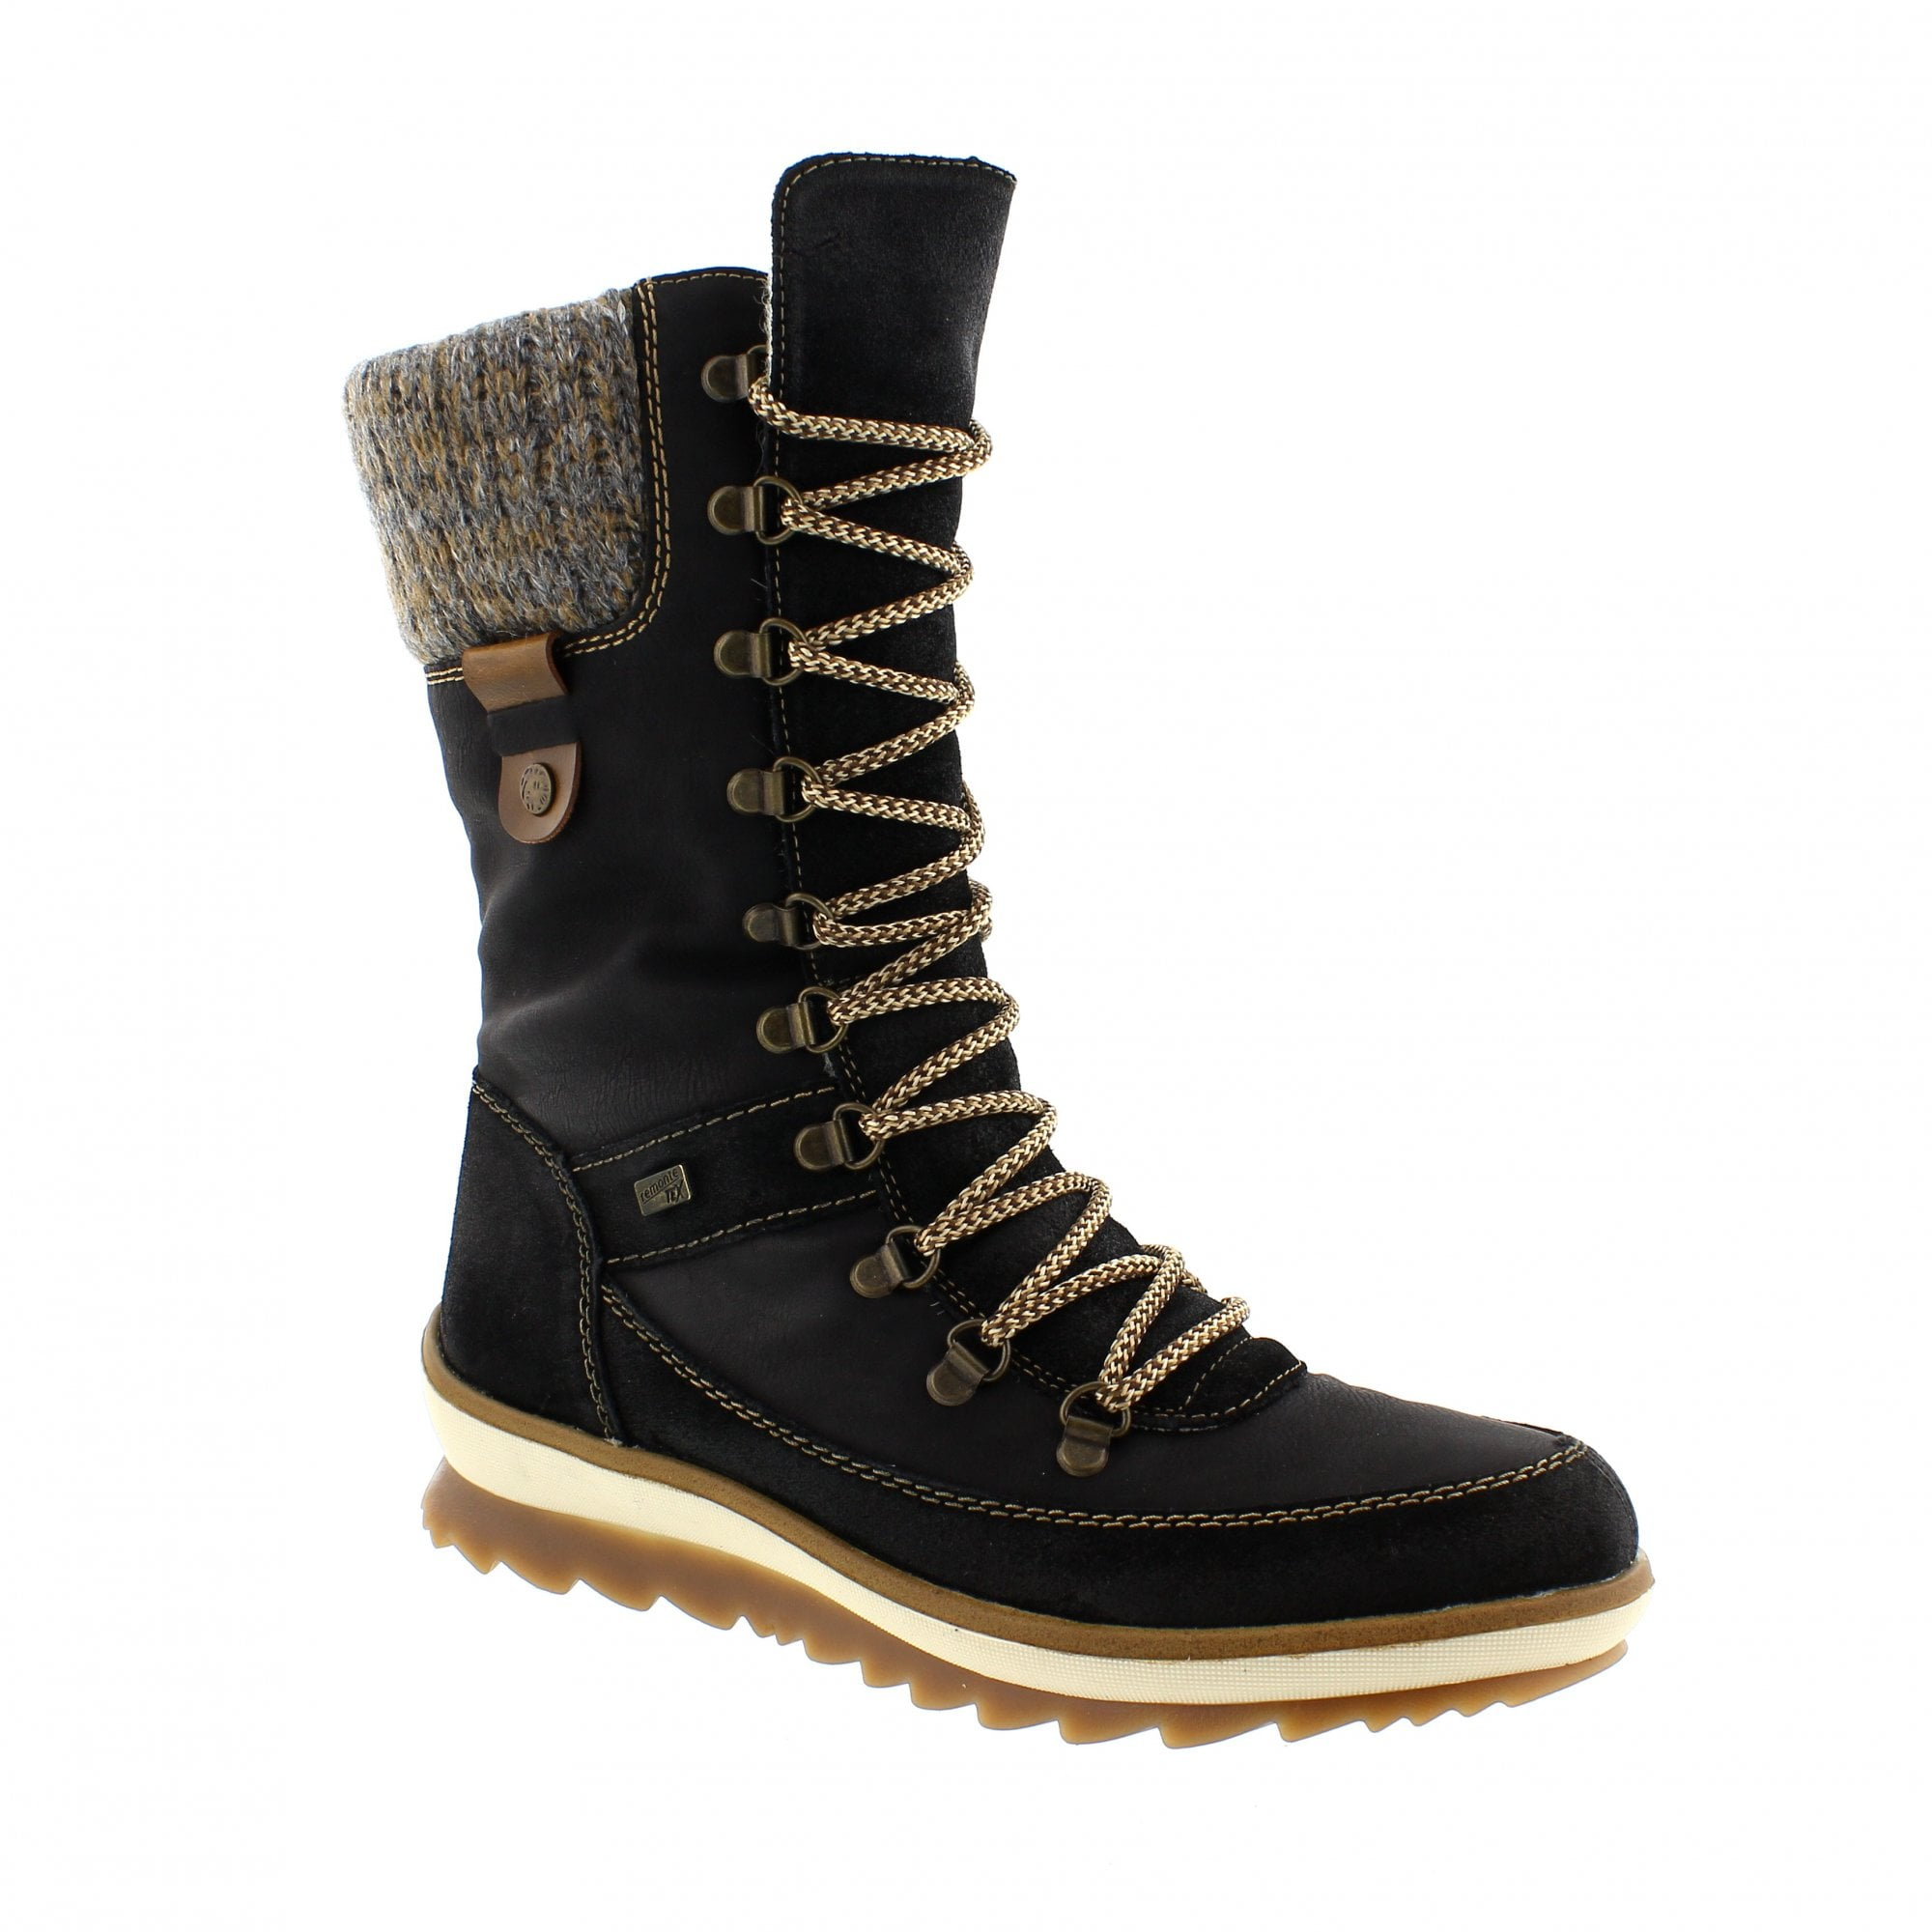 2697ca7694c320 Remonte R4371-02 Womens Mid Calf Boots